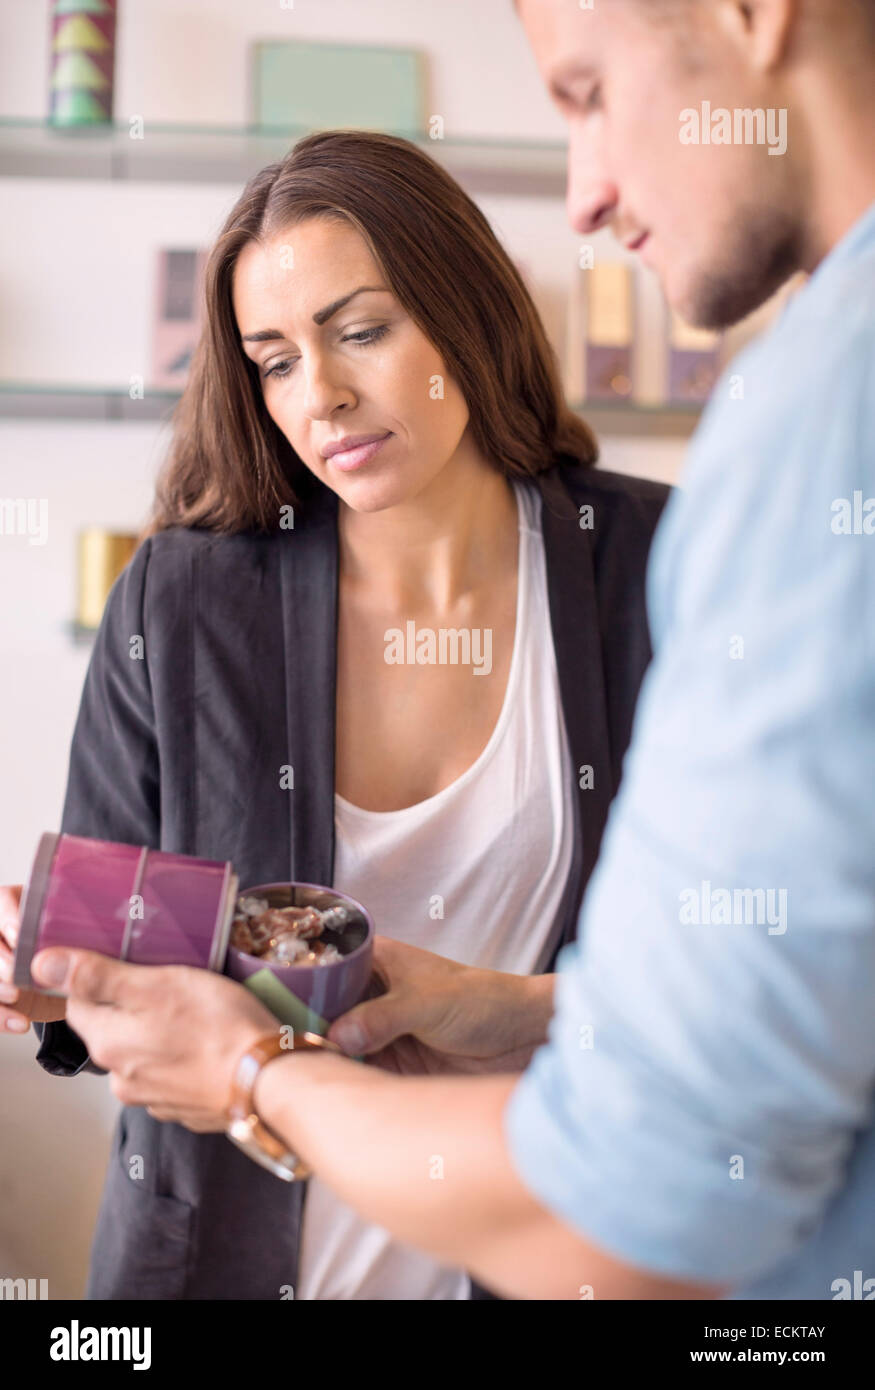 Male worker with colleague verifying product in candy store - Stock Image